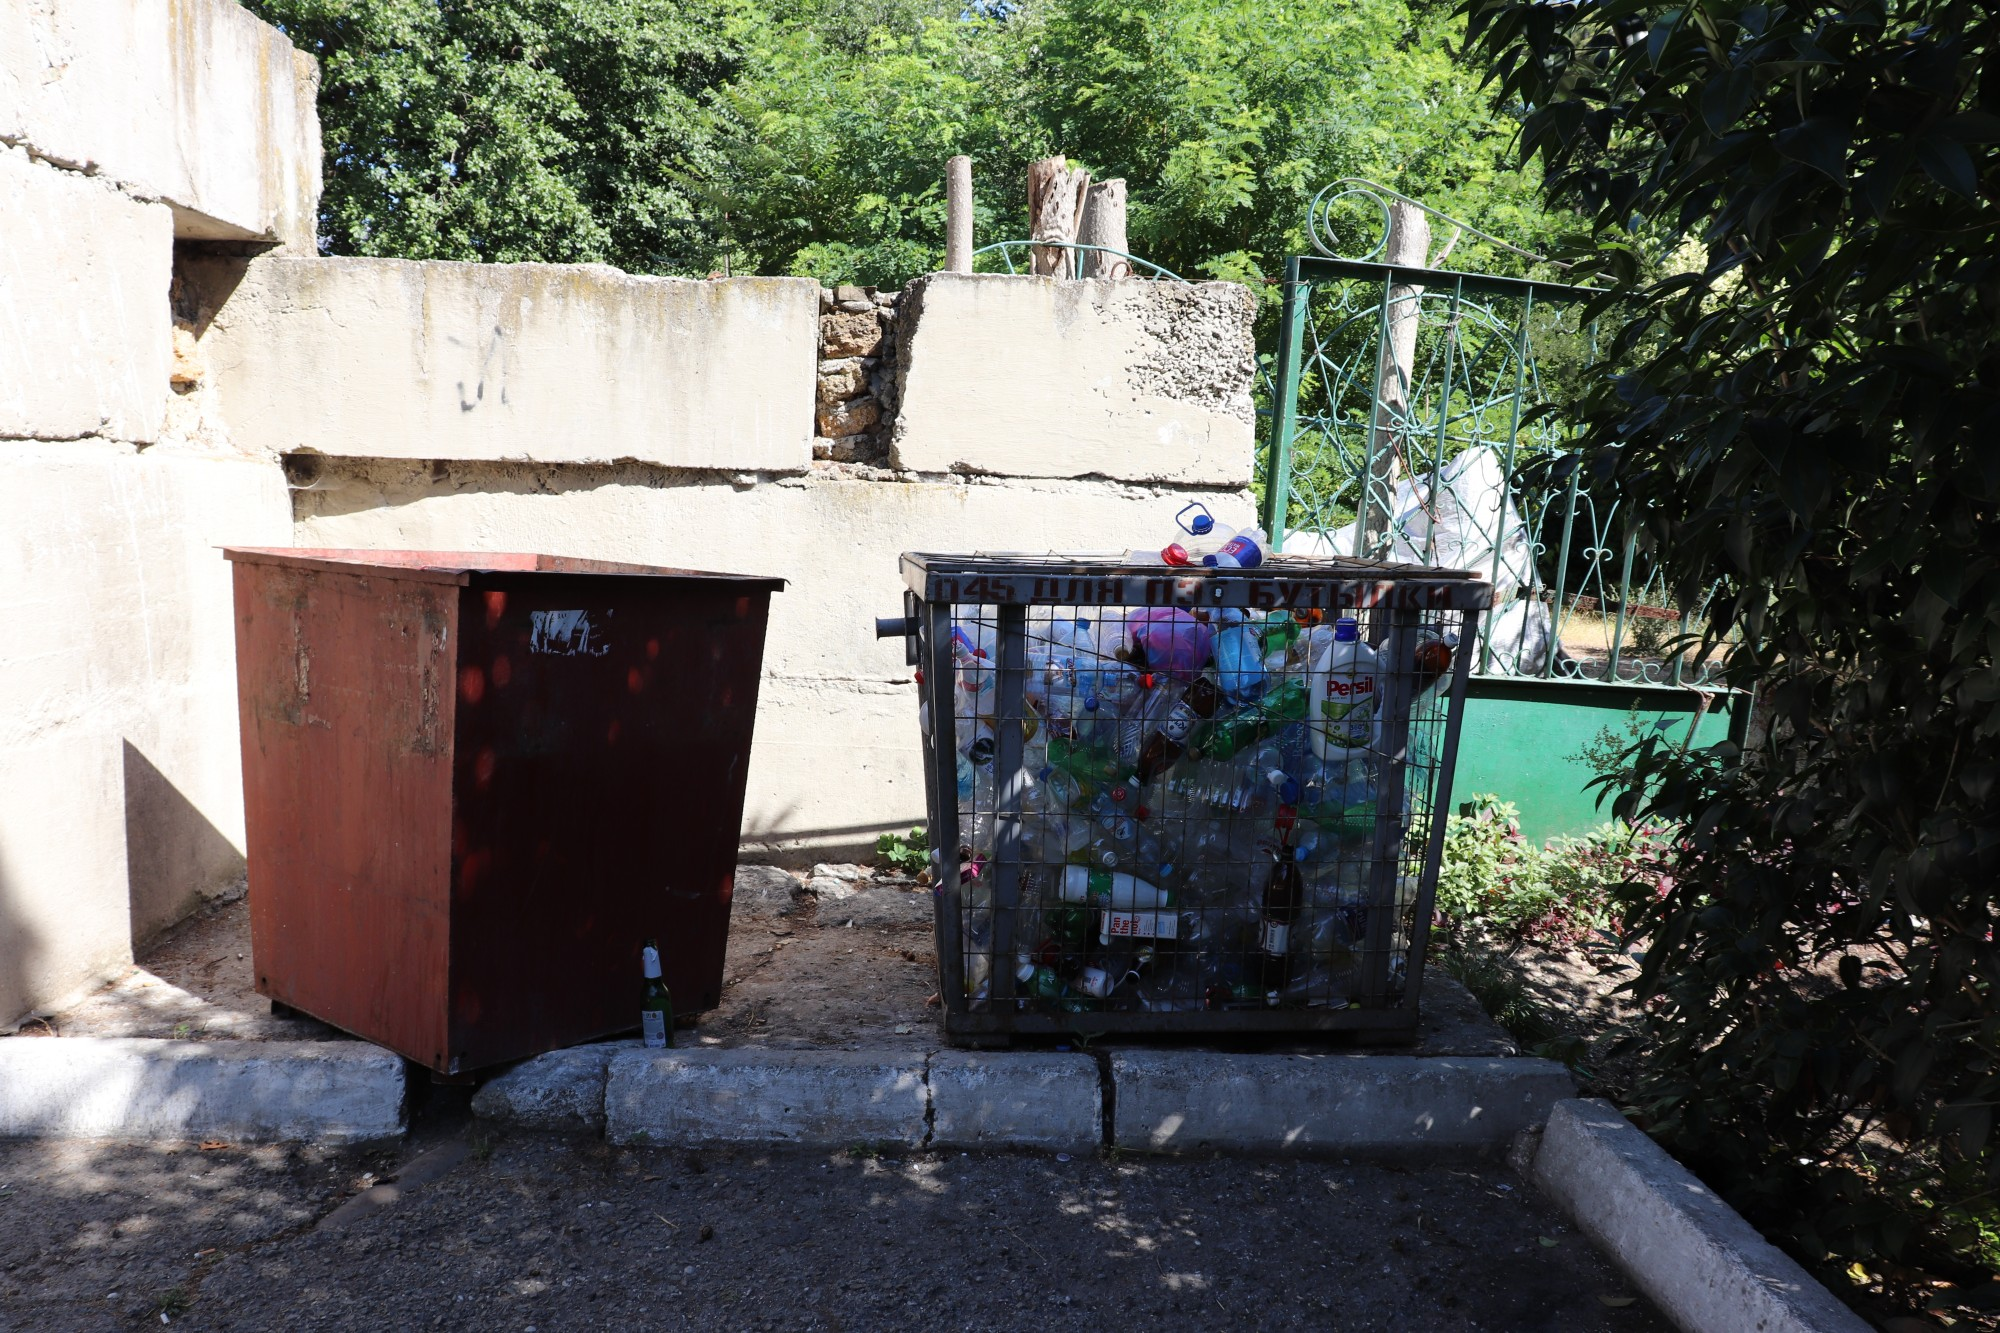 """Crimean dump just, the container, then, collects, separately, bottles, set, scaffolding """", which, plastic, Glass, easier, gives,"""" orderlies, next to, just, do, accepted, often"""